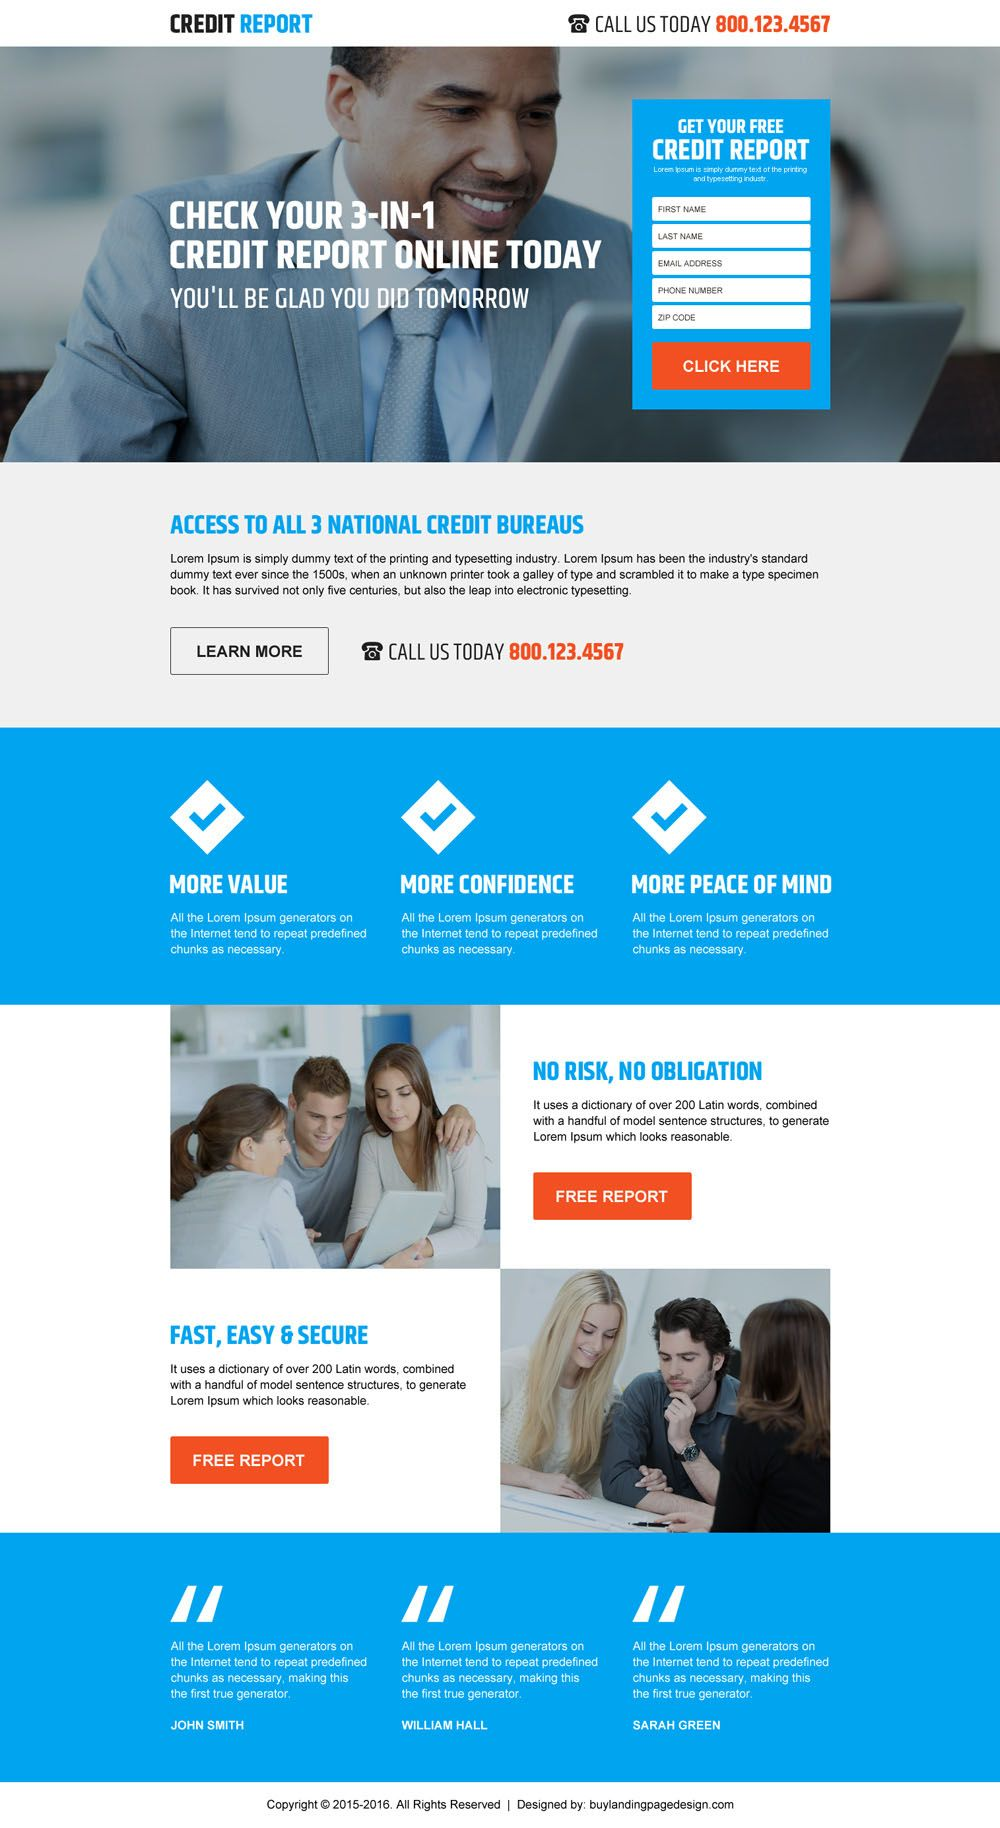 Free Credit Score Rating Lead Form Landing Page Design  Credit